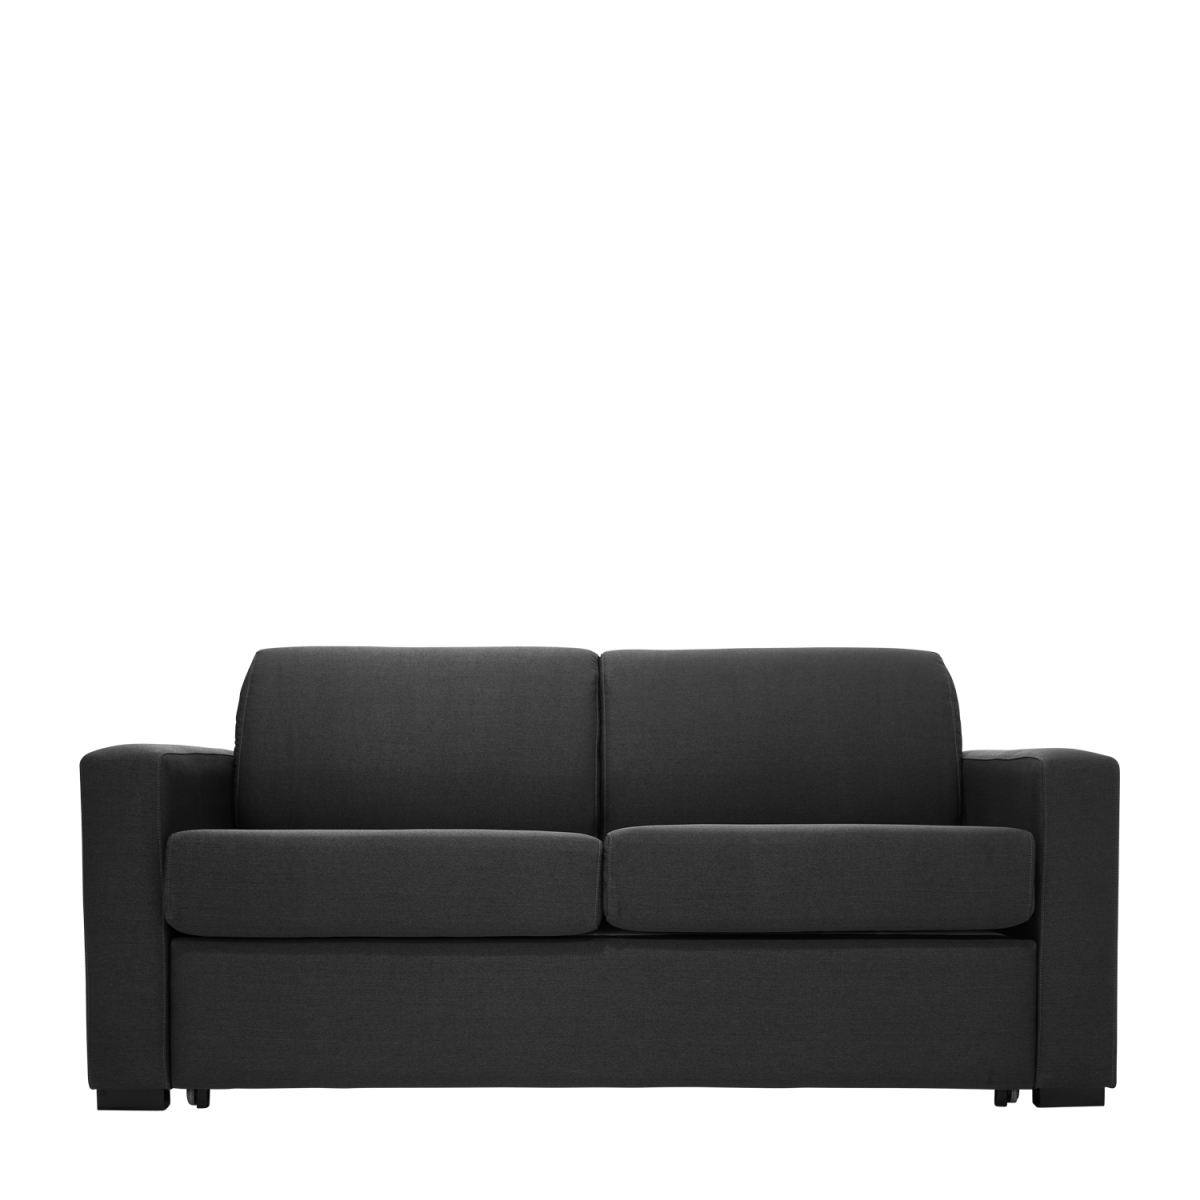 Double bed top view png - Tammy Fabric Sofa Bed Raven Double Star Furniture